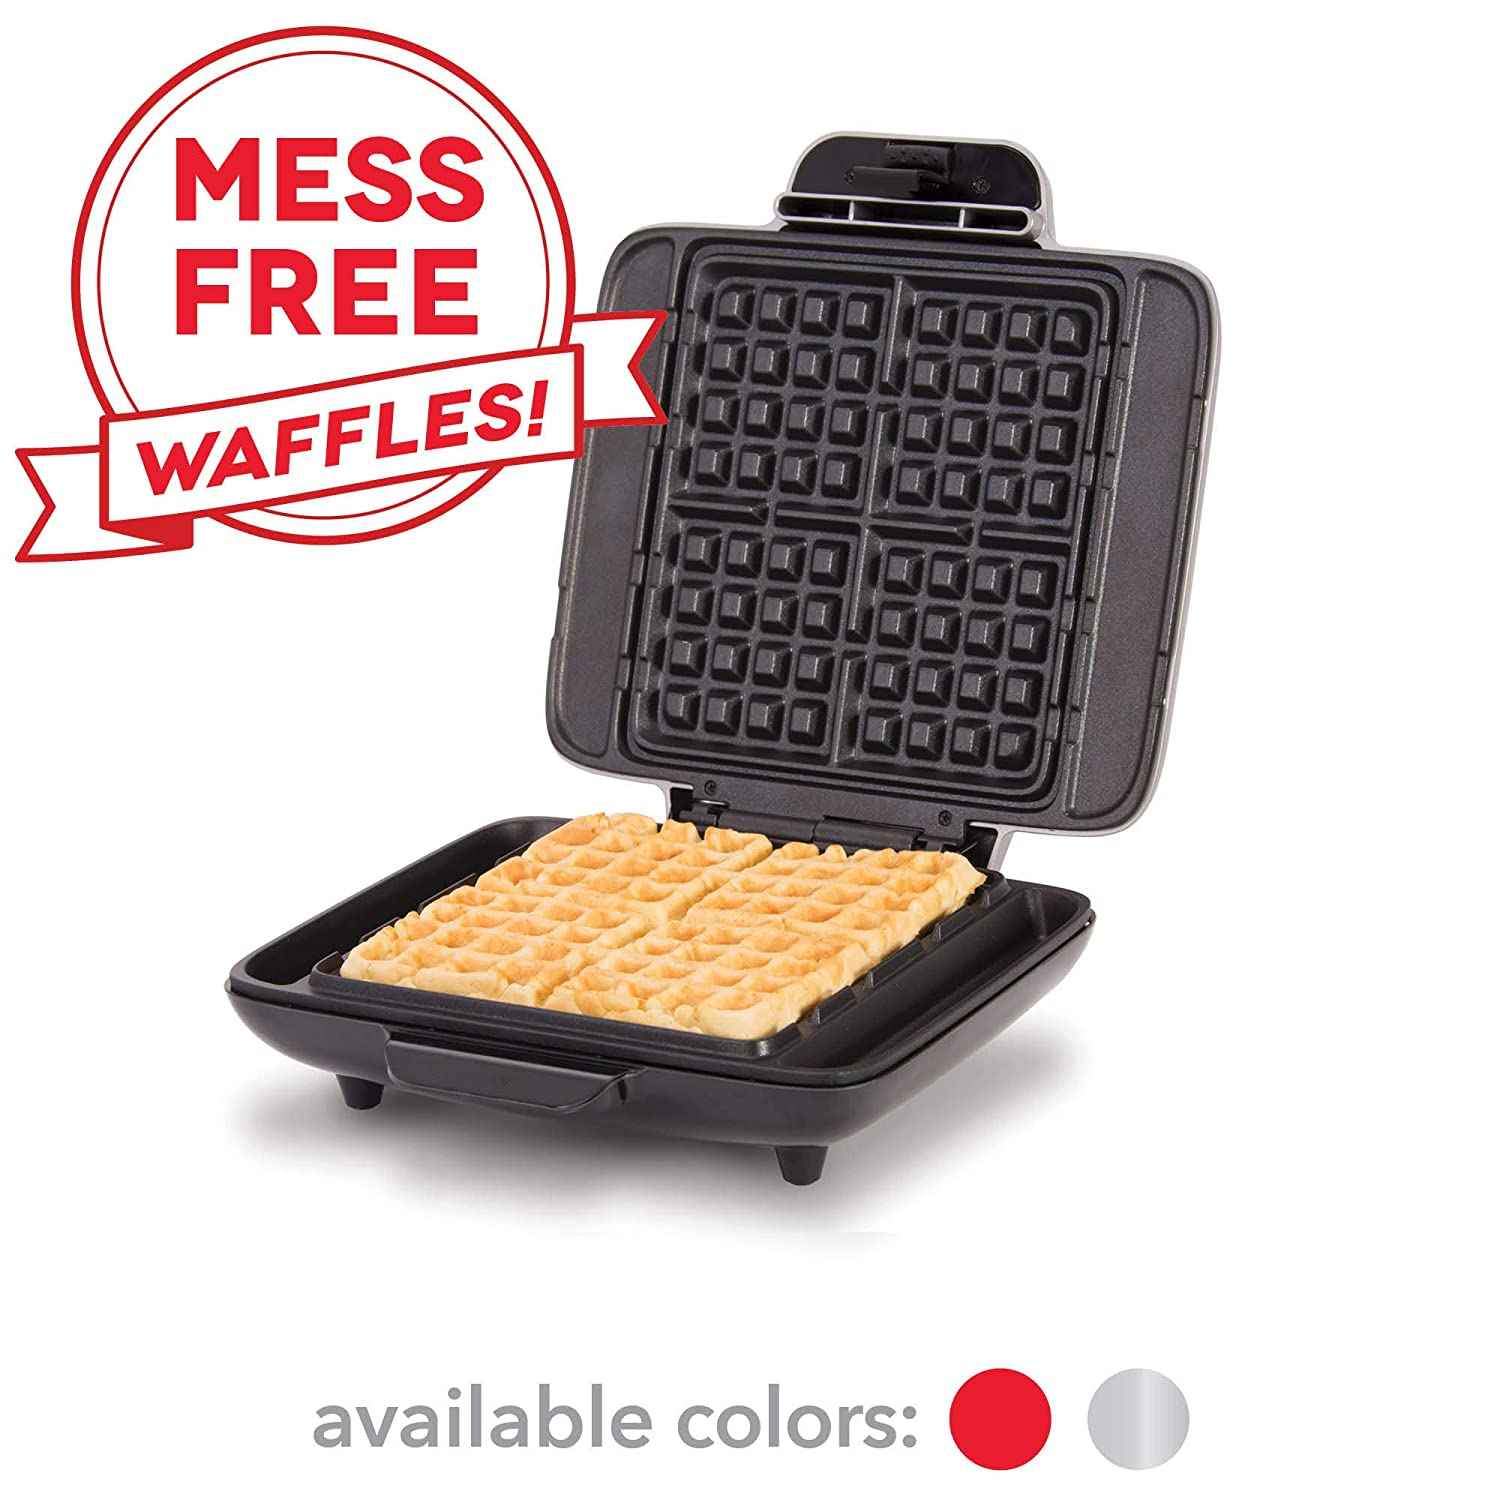 DASH No-Drip Belgian Waffle Maker: Waffle Iron 1200W + Waffle Maker Machine  For Waffles, Hash Browns, or Any Breakfast, Lunch, & Snacks with Easy